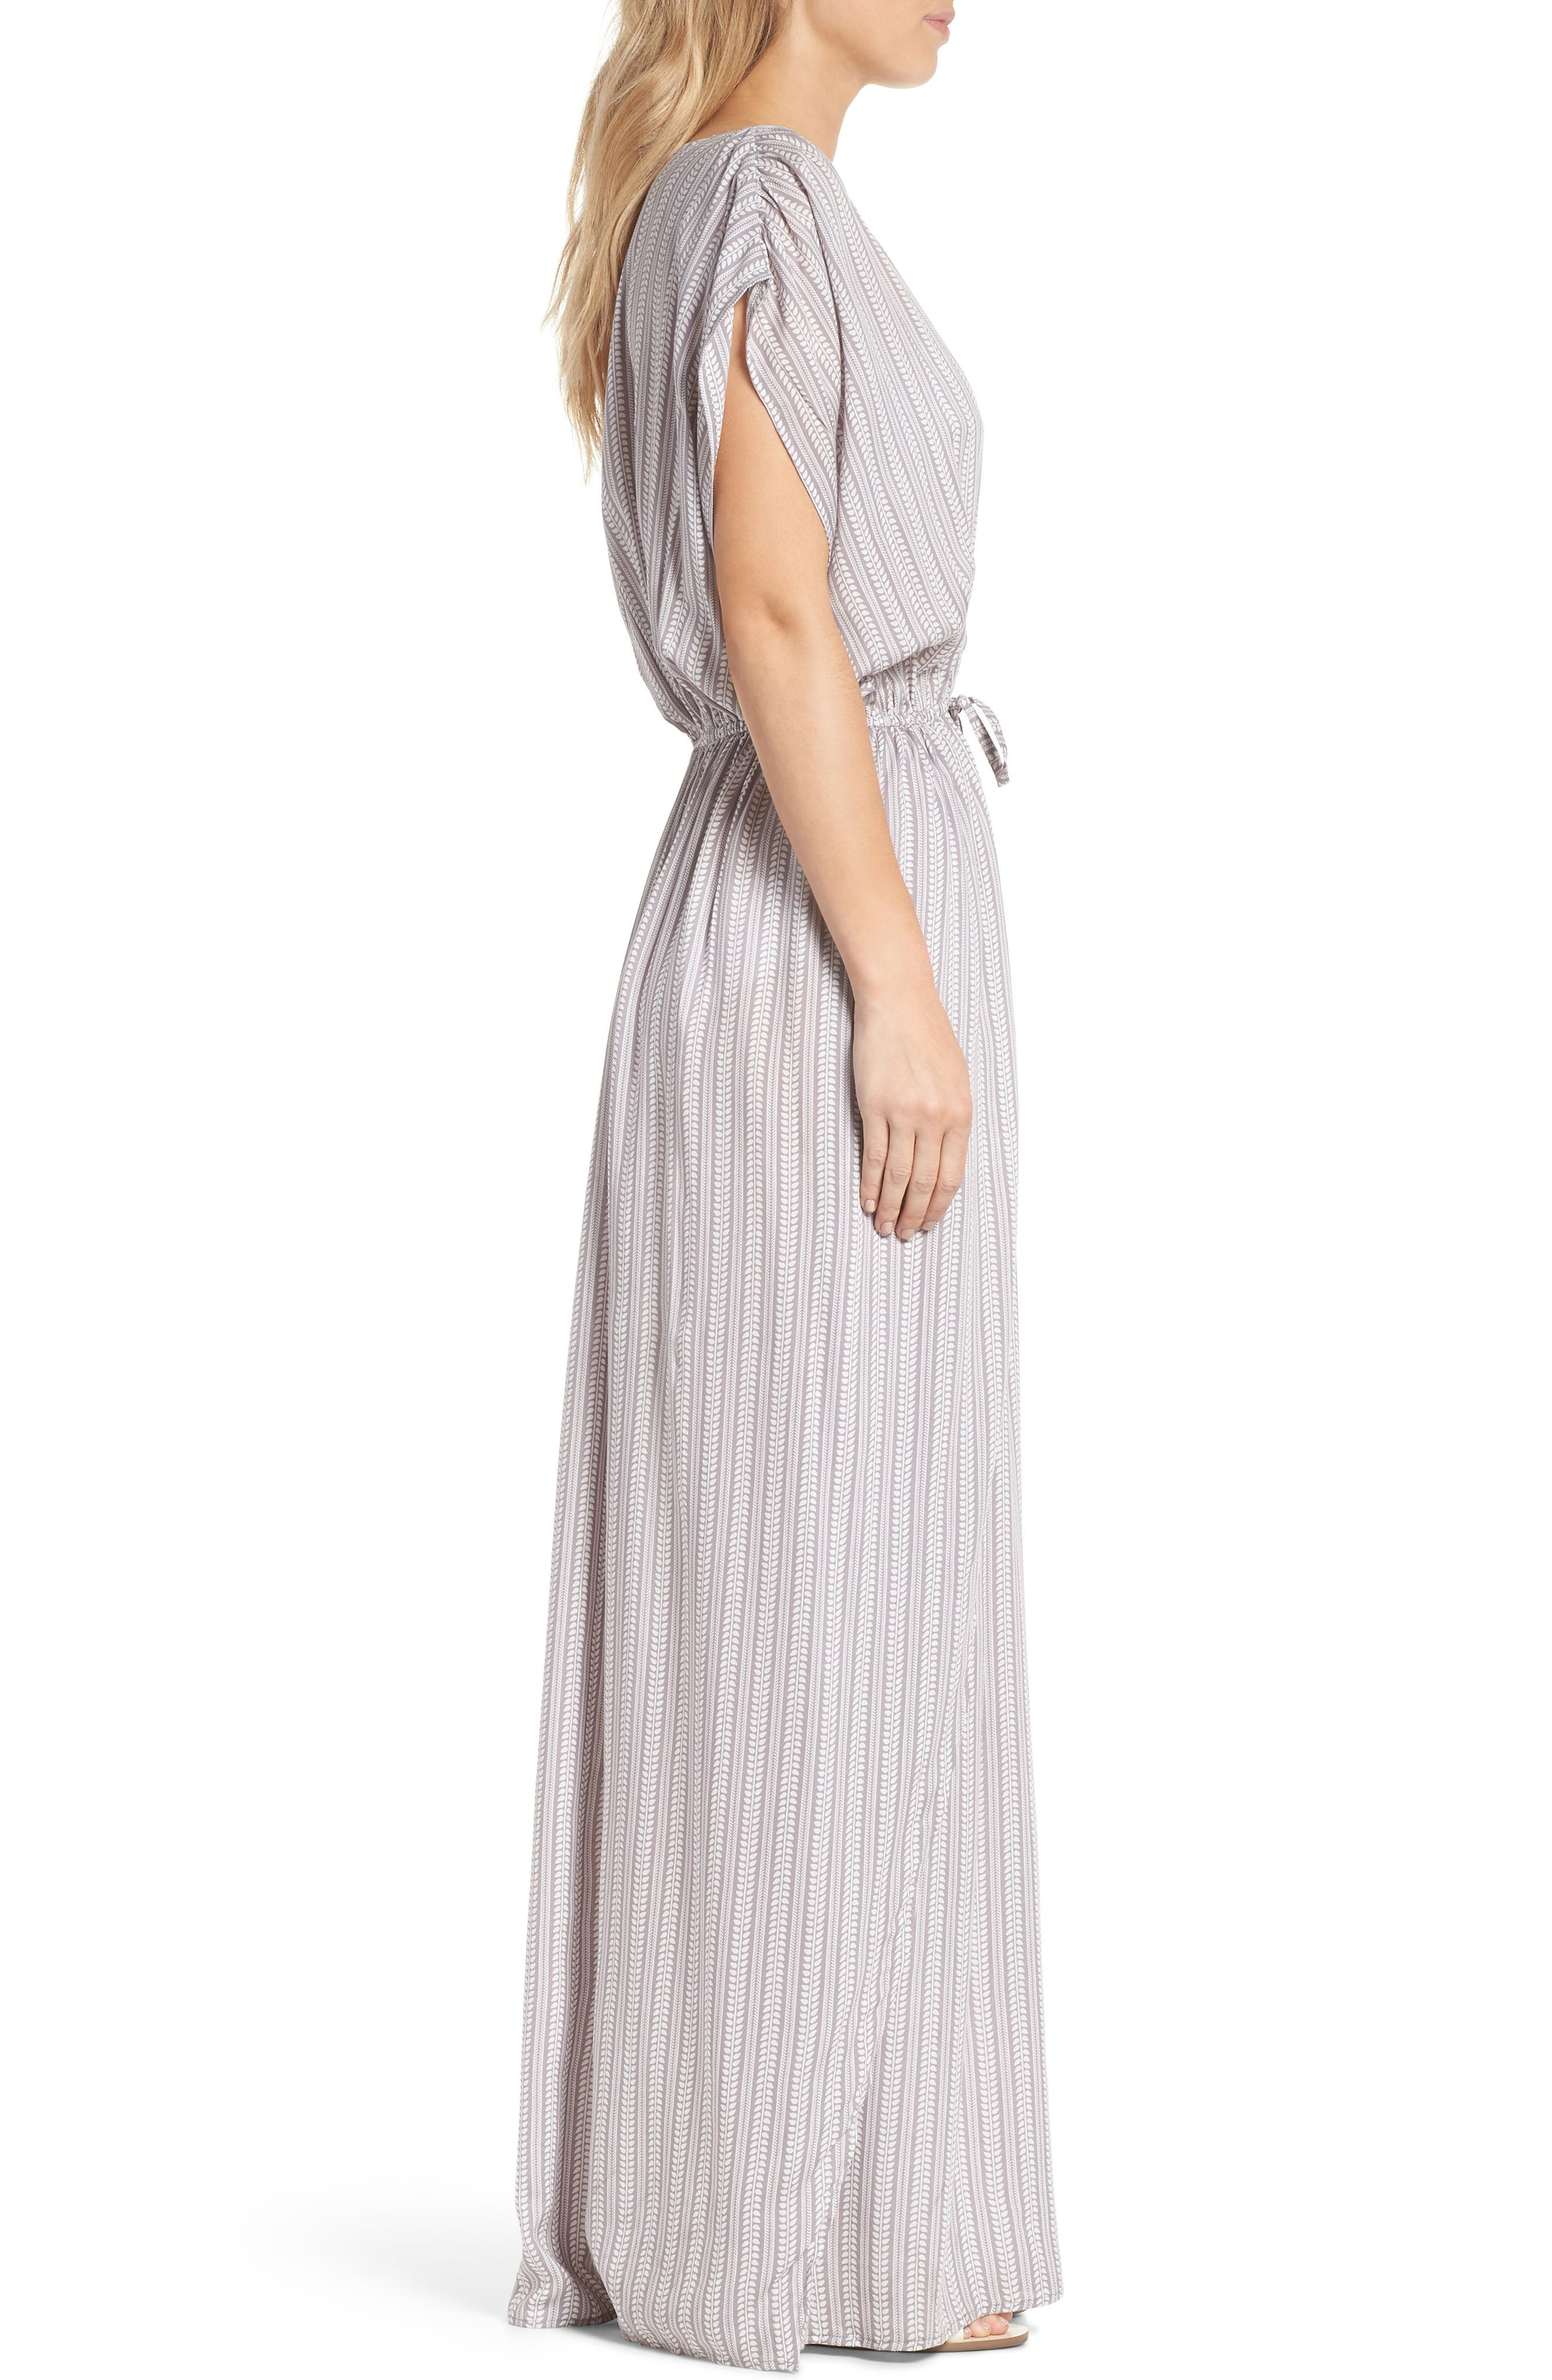 Wrap Maxi Cover-Up Dress,                             Alternate thumbnail 3, color,                             033